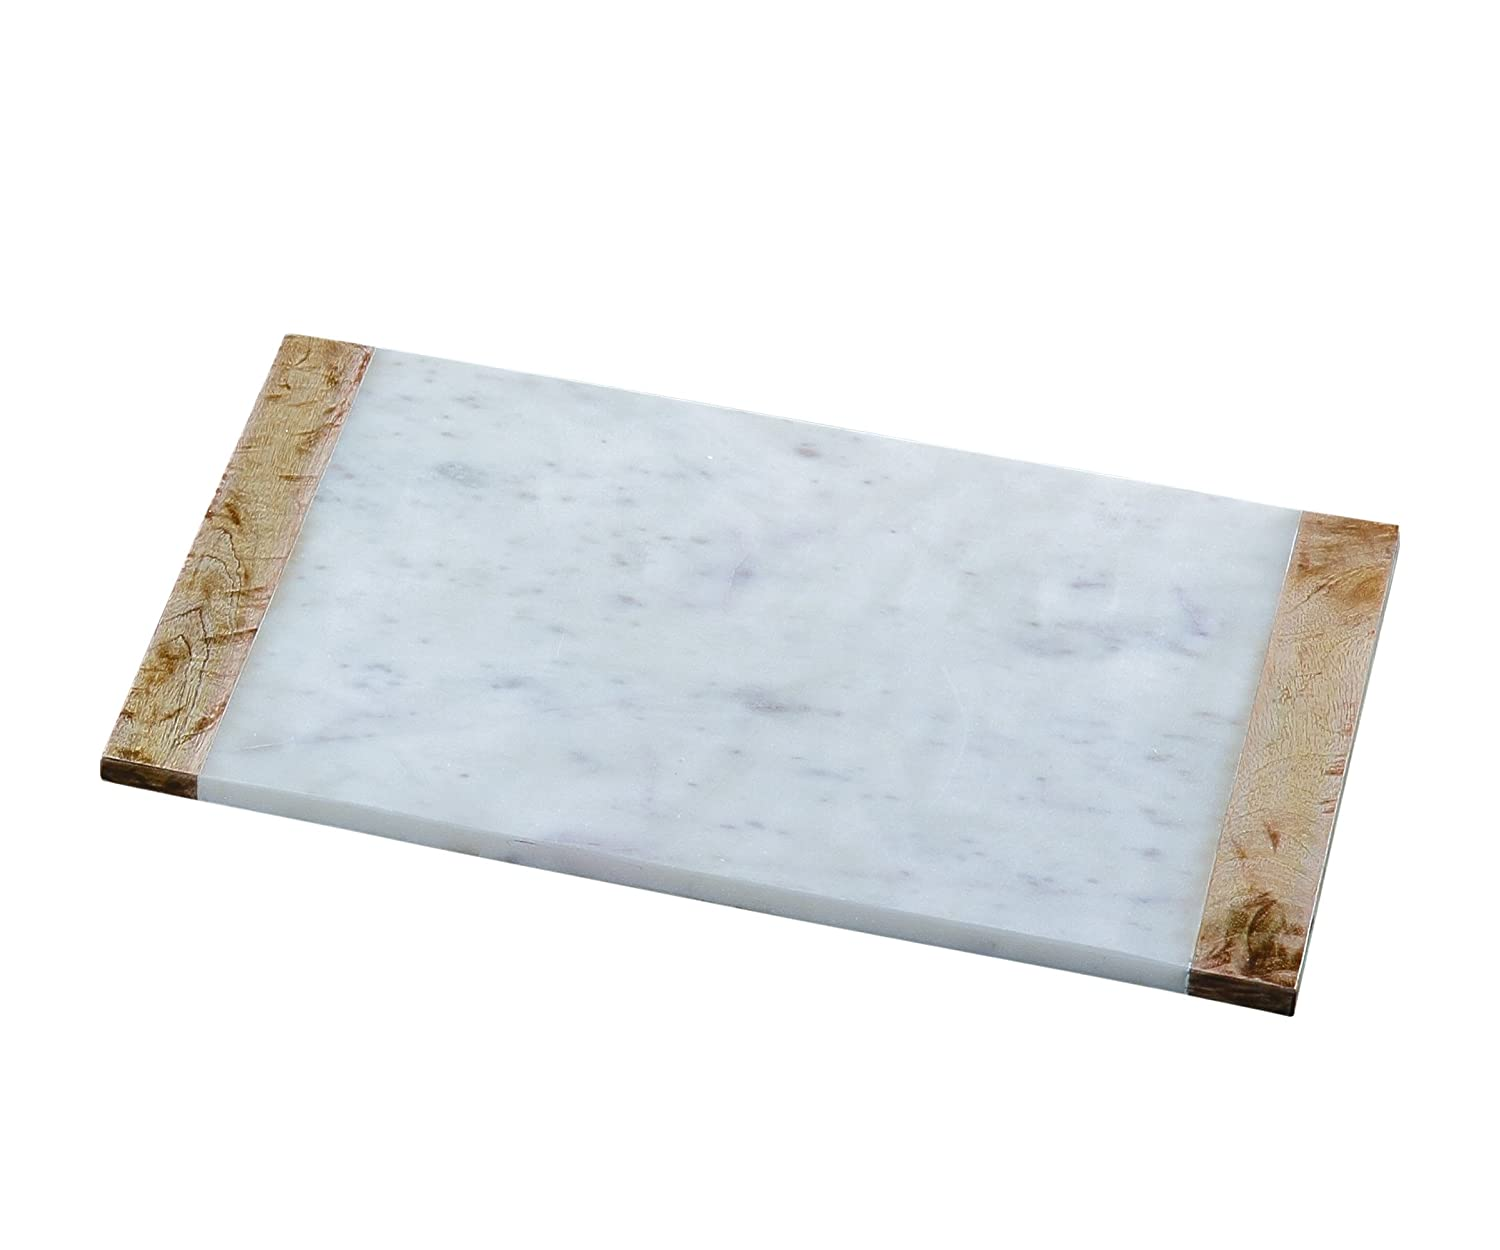 "Creative Home White Marble and Mango Wood Pastry Board 12/"" x 18"